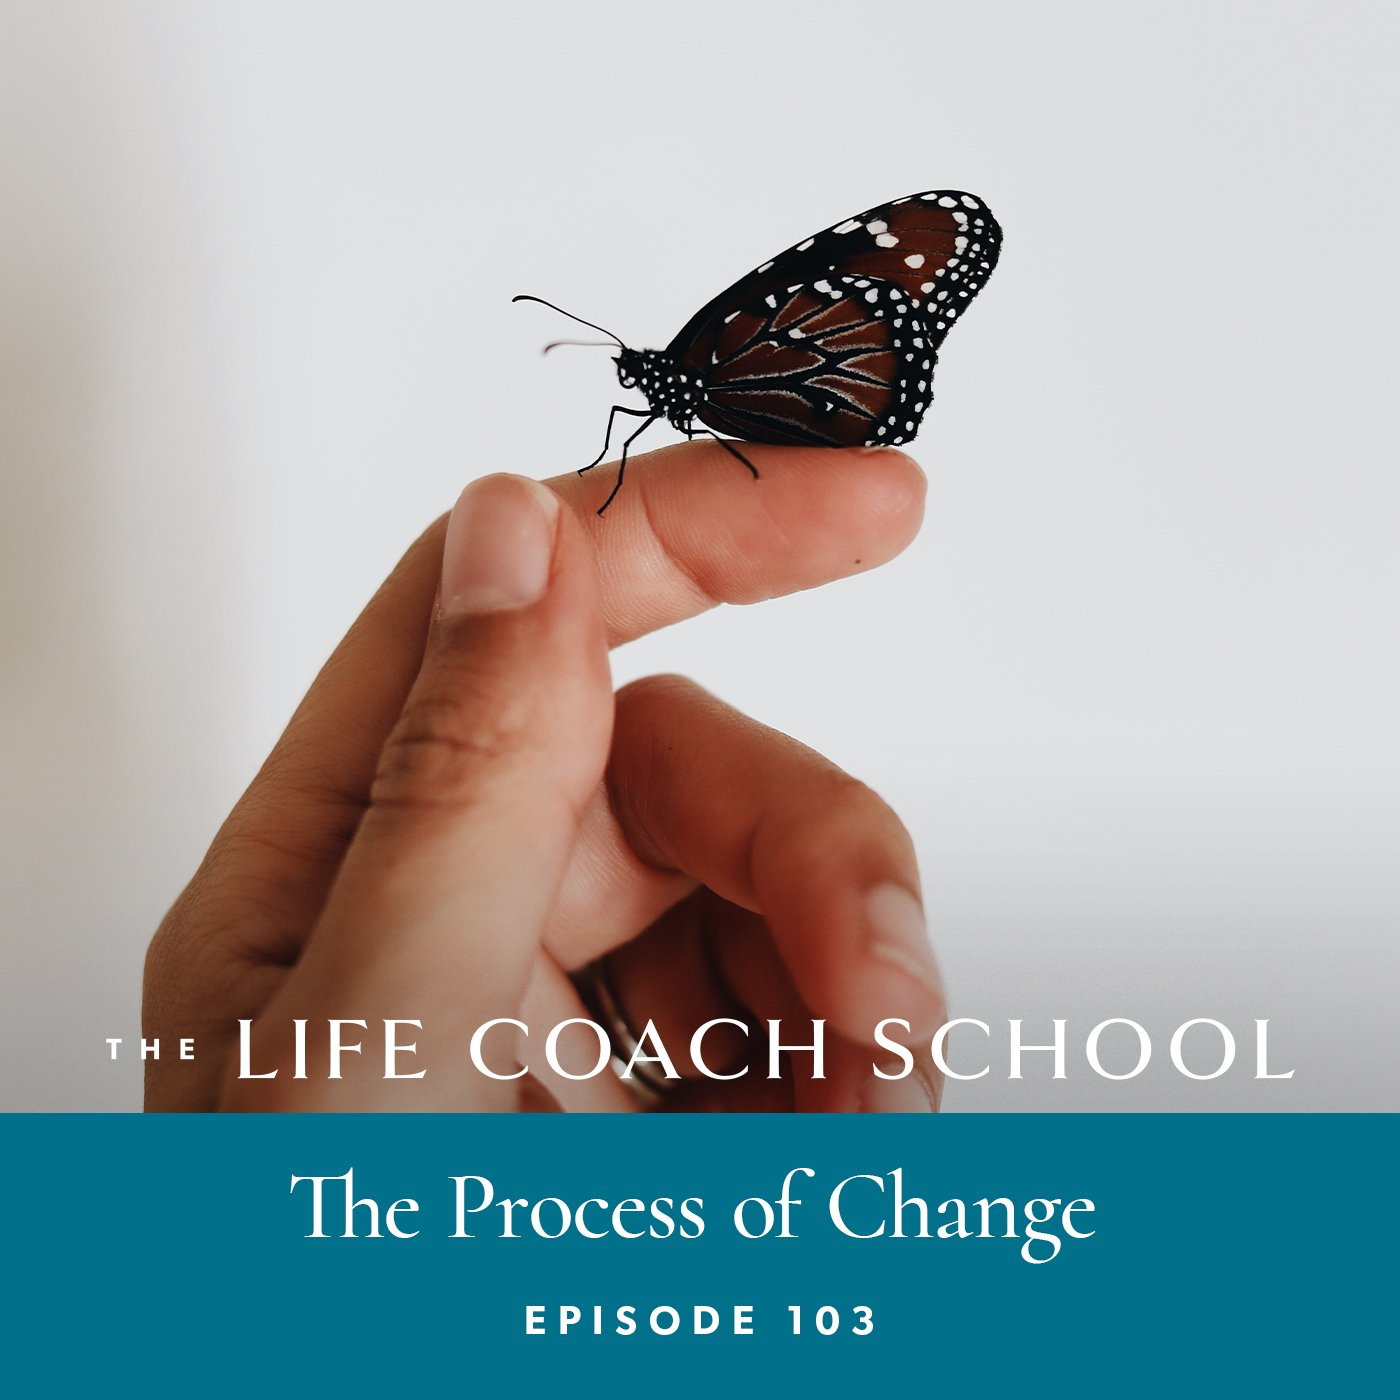 The Life Coach School Podcast with Brooke Castillo | Episode 103 | The Process of Change